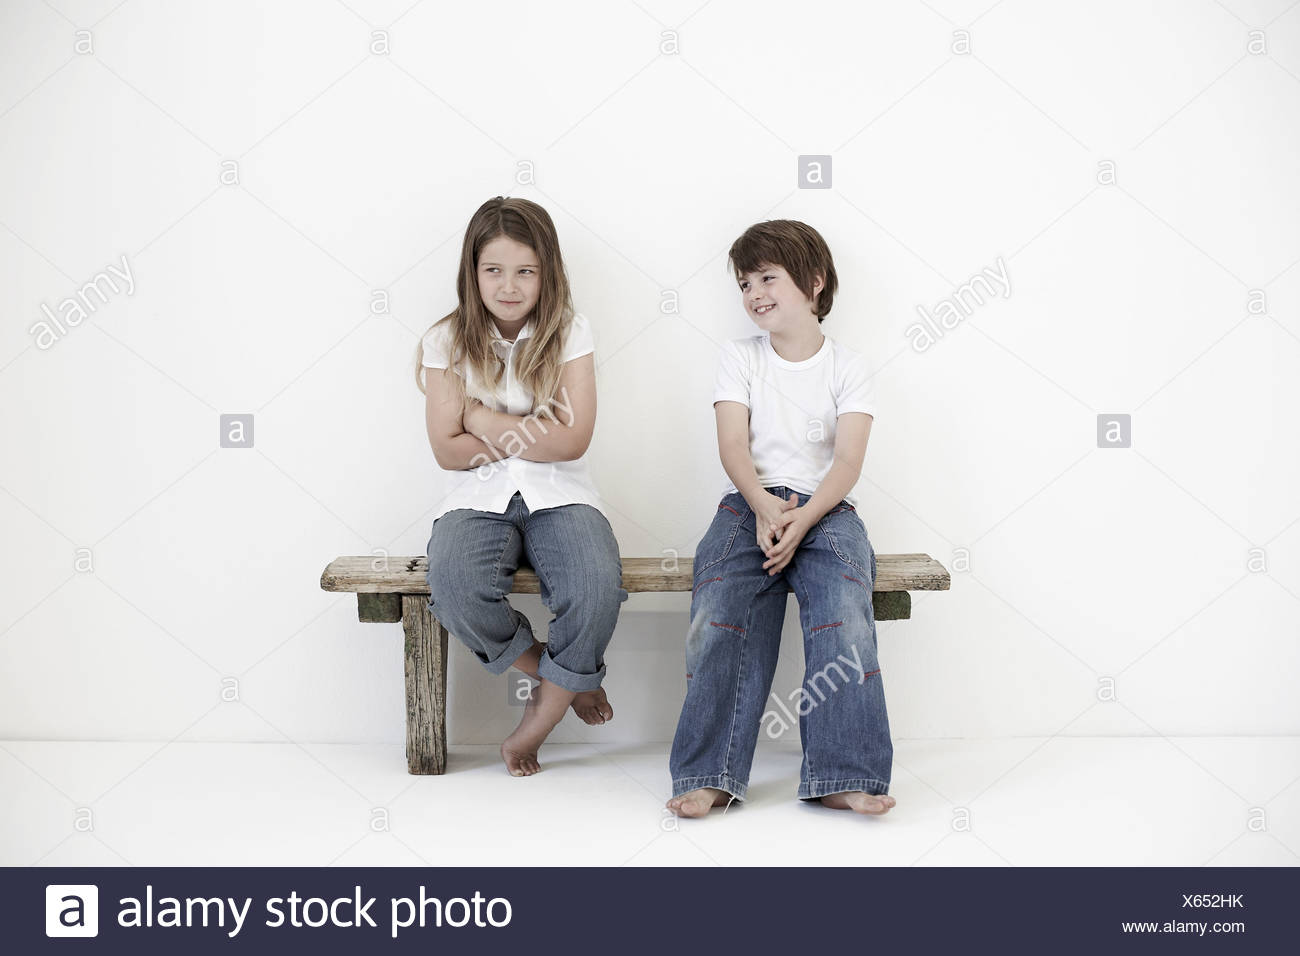 Young boy smiling at shy young girl - Stock Image